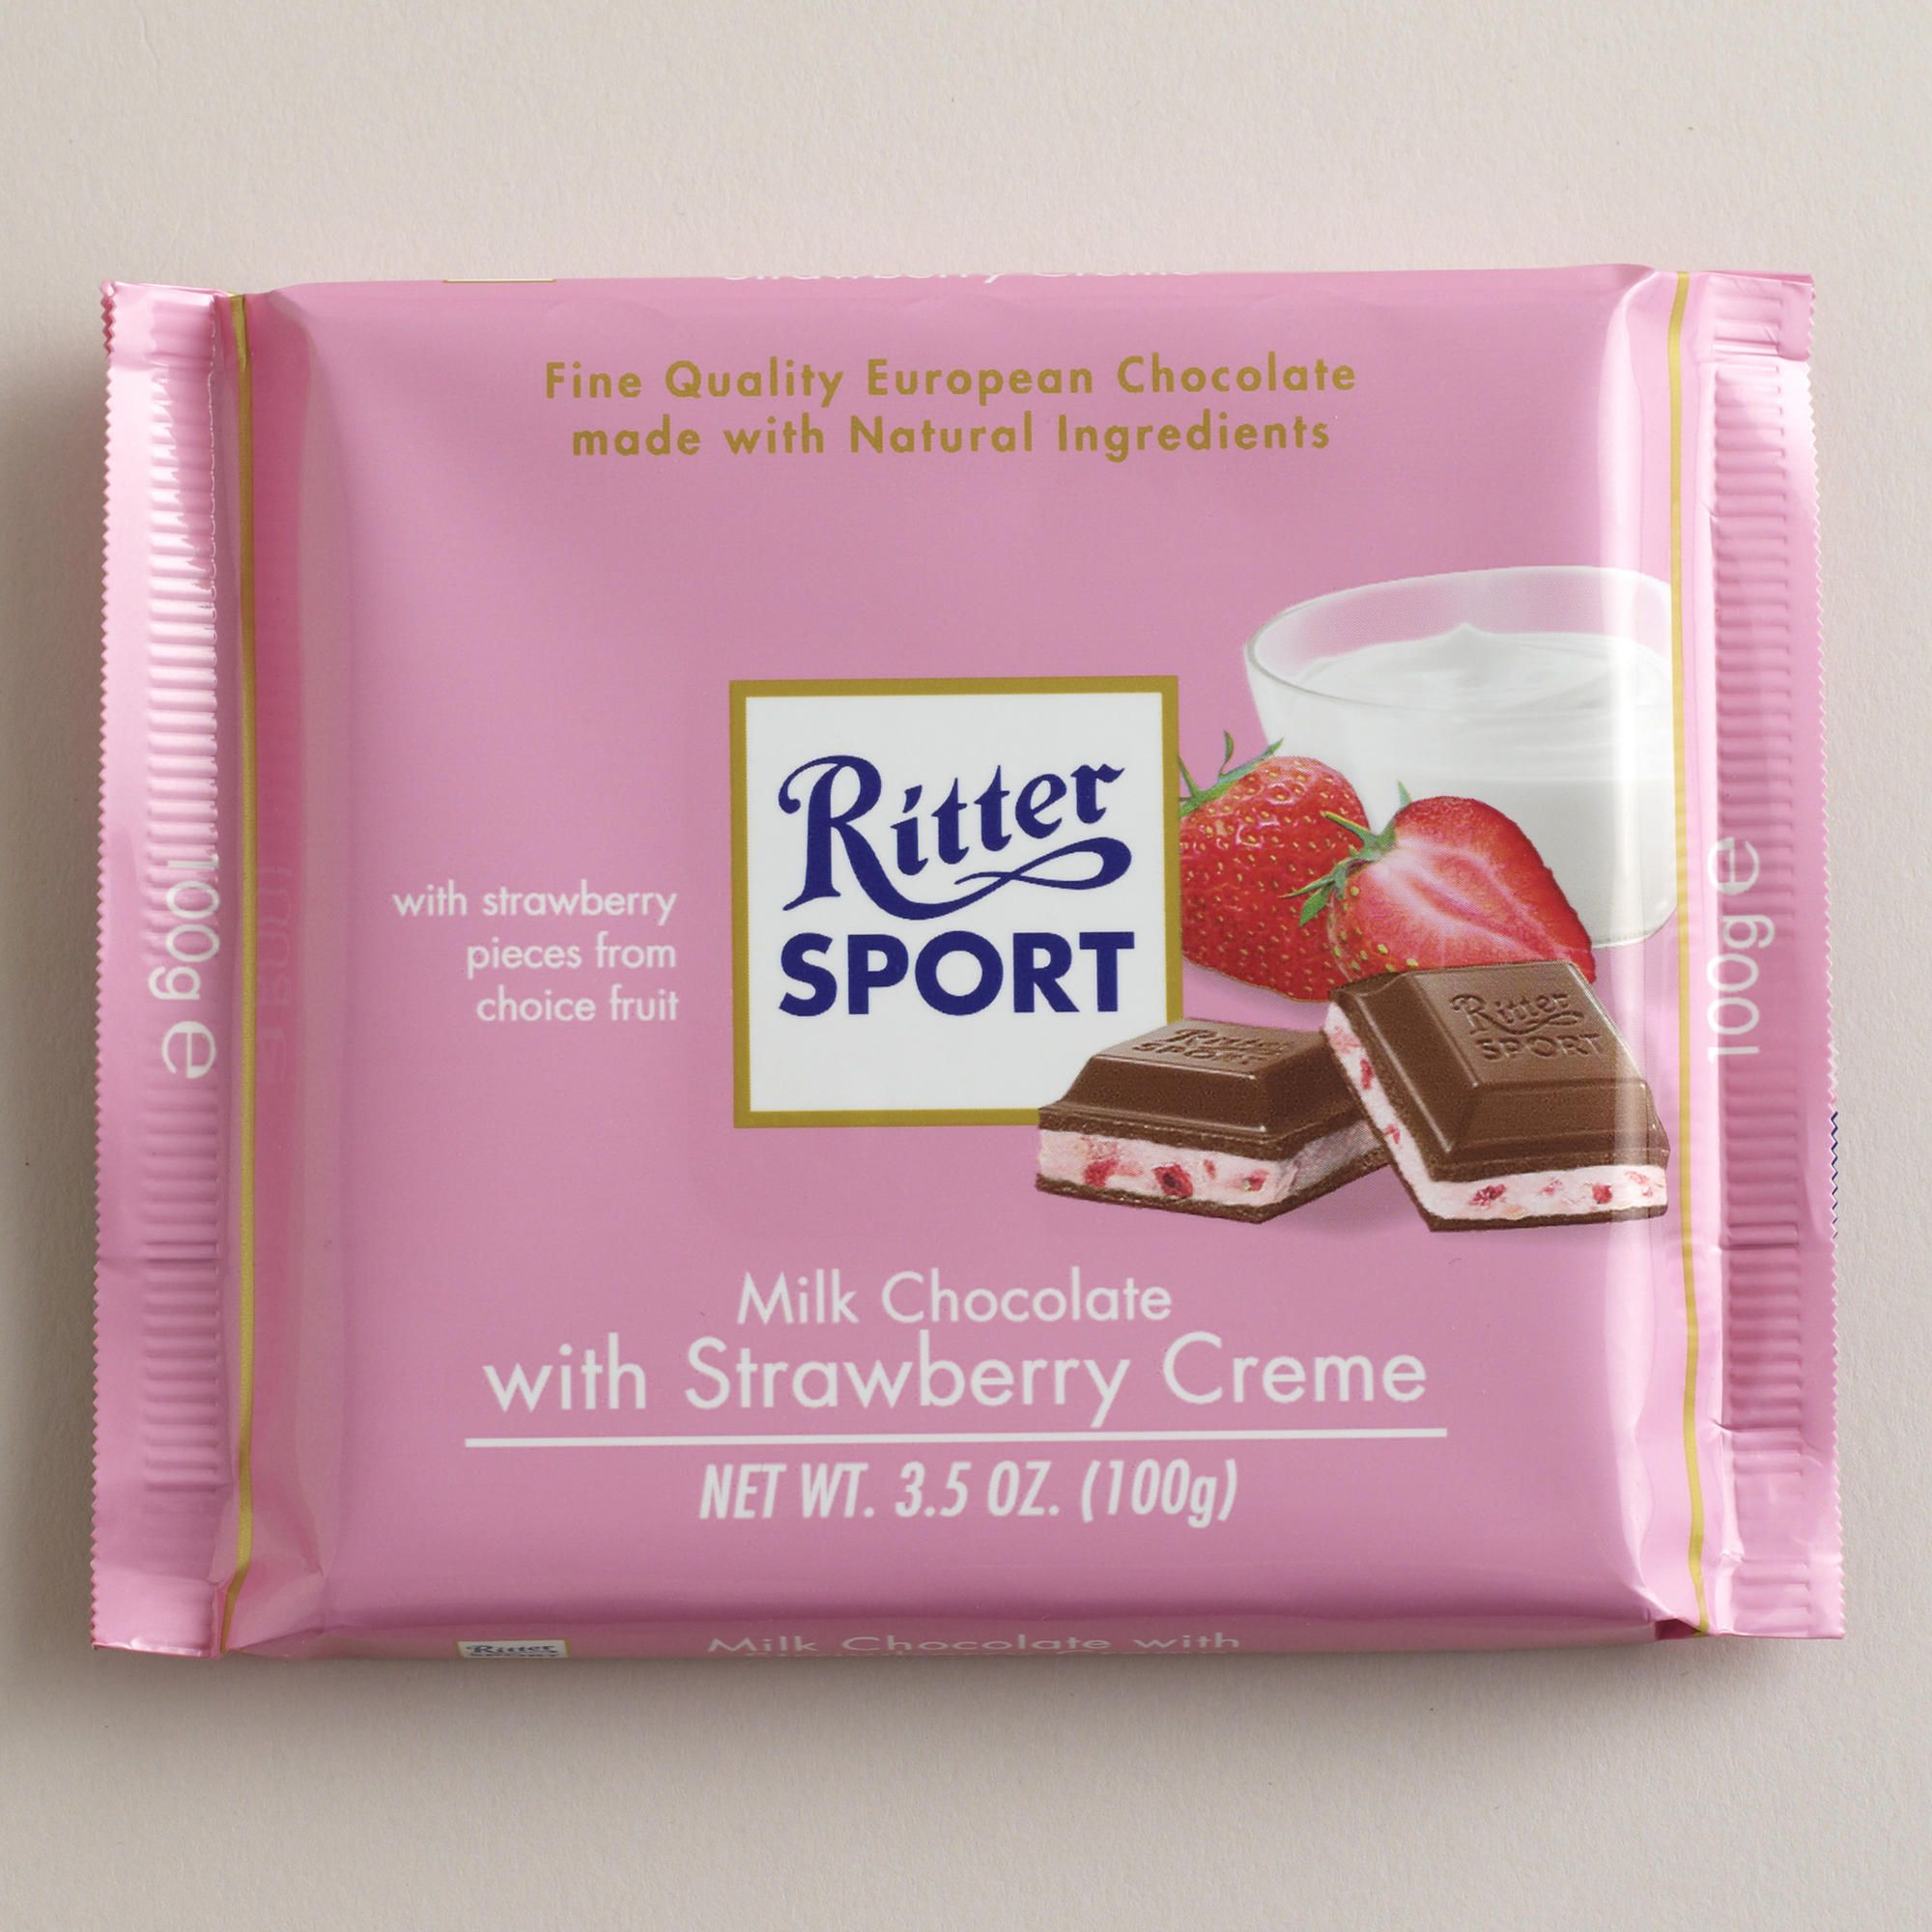 Ritter Sport milk chocolate with strawberry creme (avec